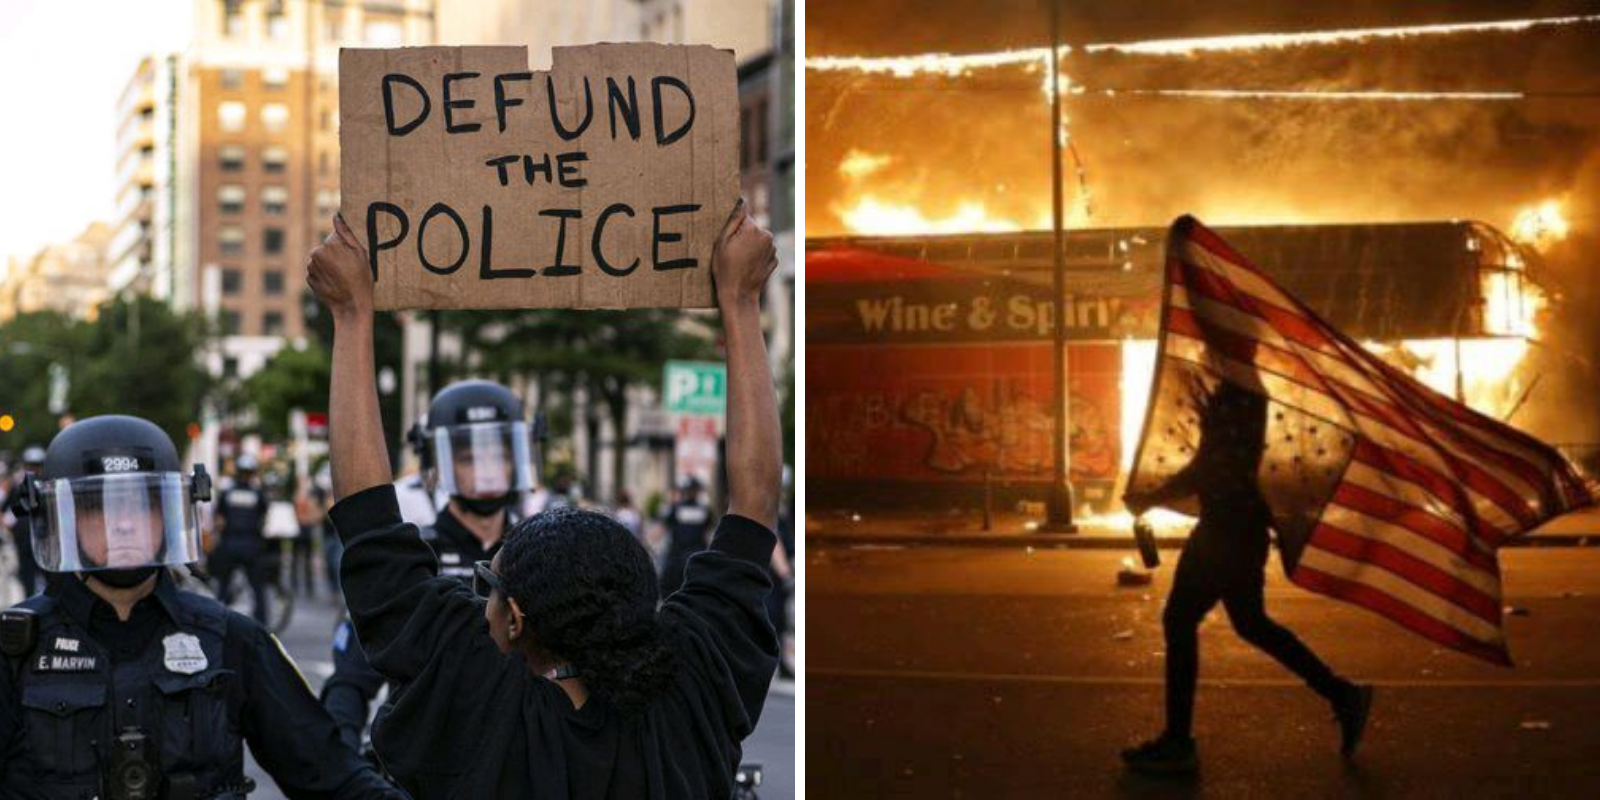 Democrat-run cities that voted to 'Defund the Police' now face soaring violent crime rates